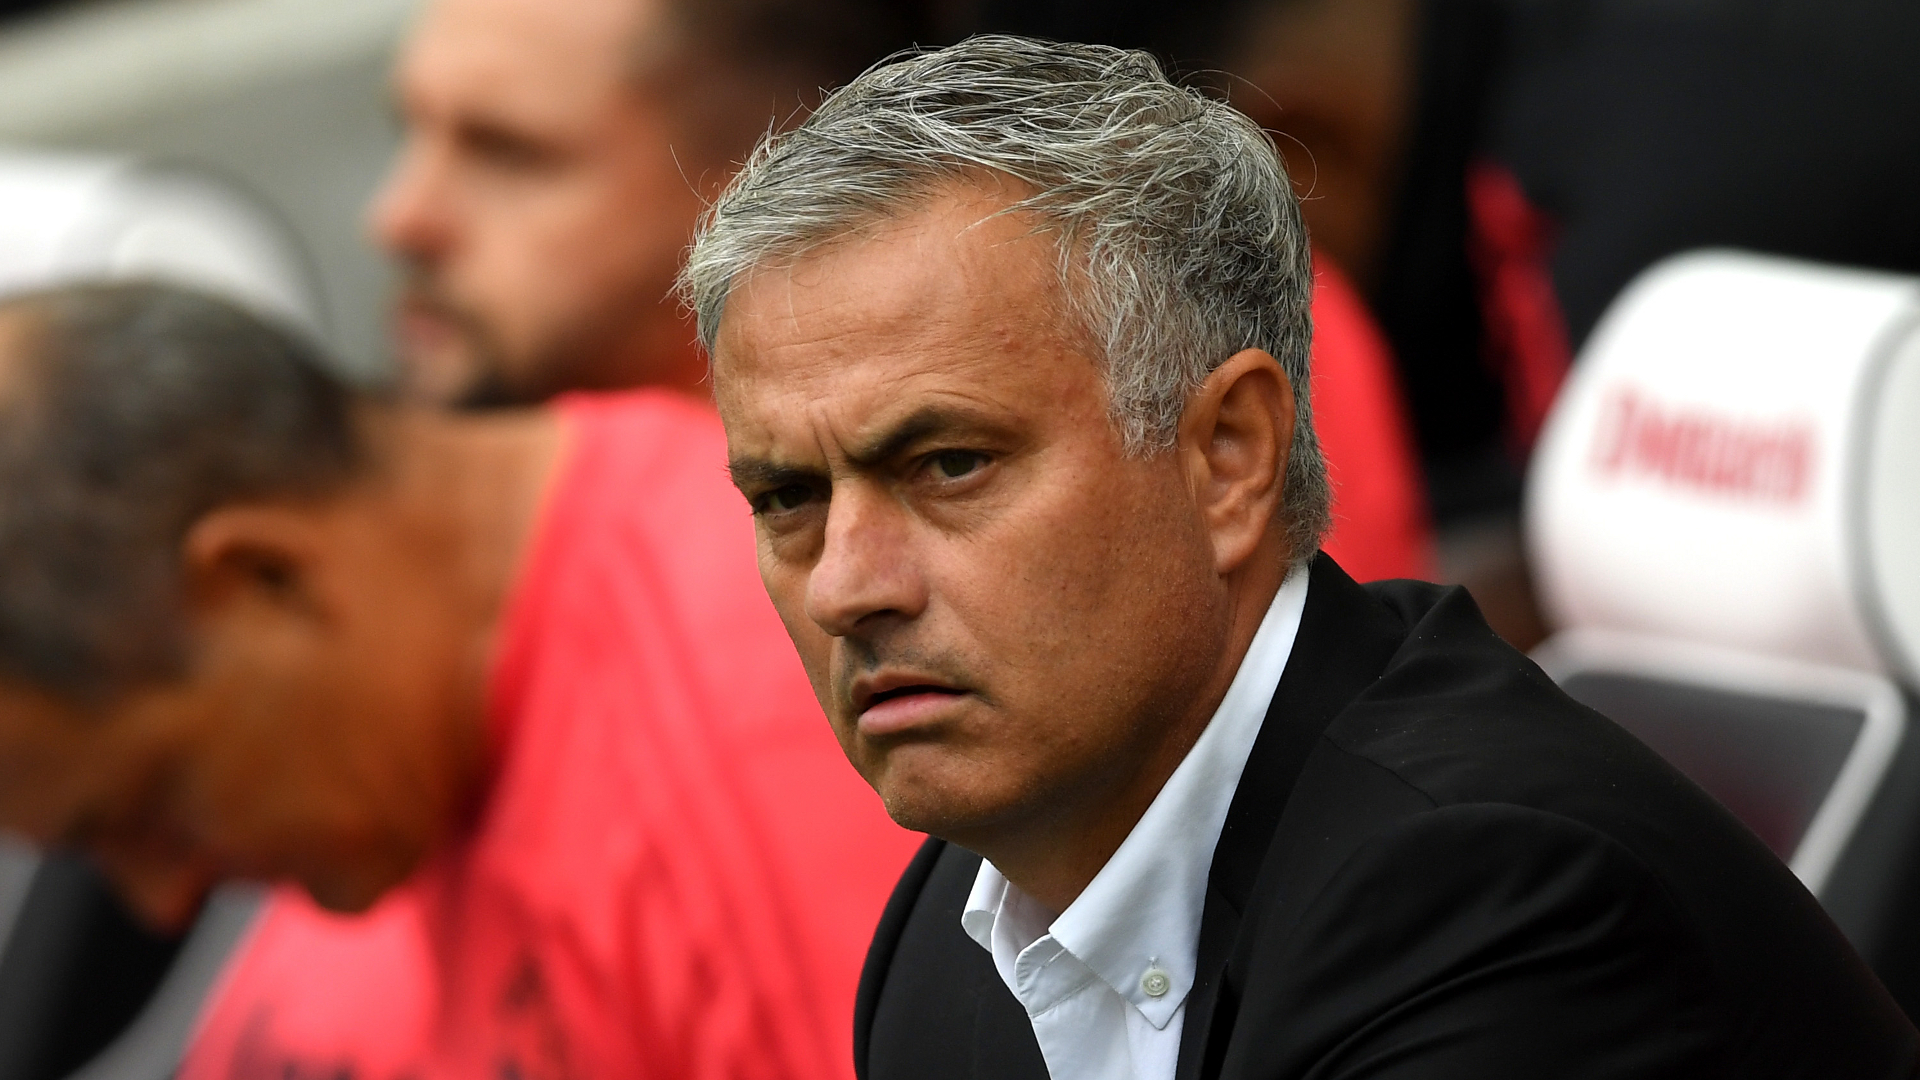 Manchester United players and Jose Mourinho are together amid rift reports Fred